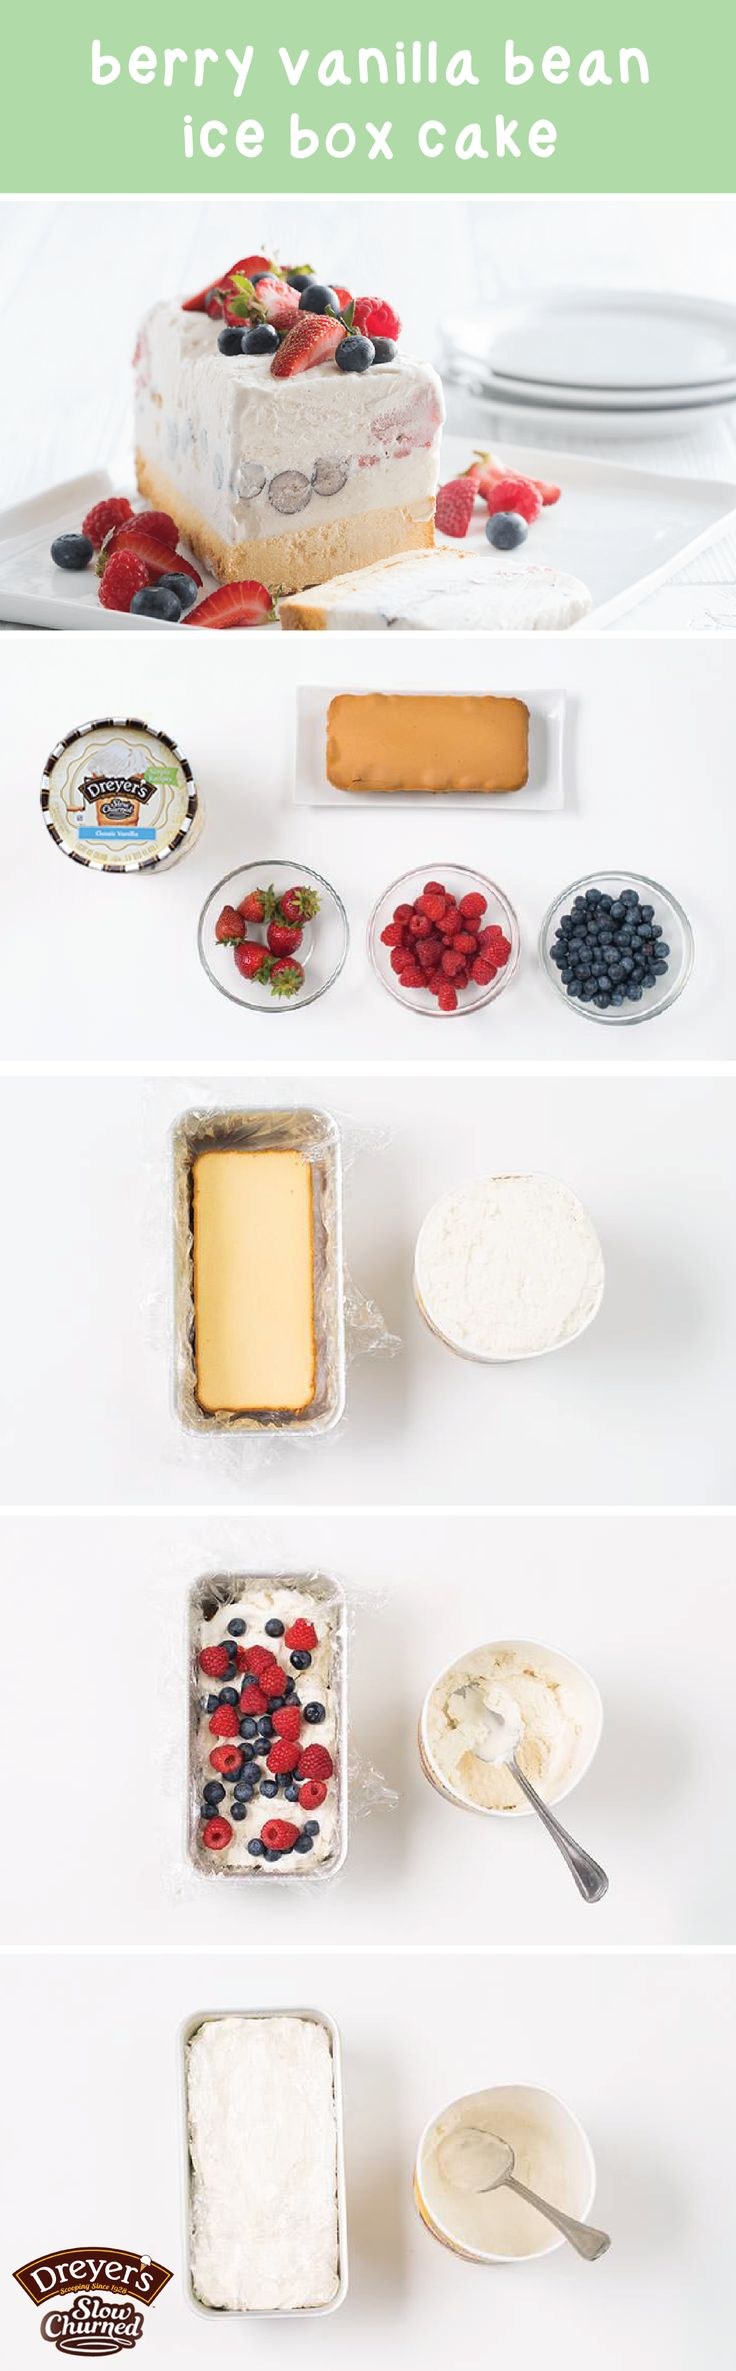 Before your next summer party, get the kids in the kitchen to help you make this Berry Vanilla Bean Ice Cream Cake! All you'll need for this recipe is store-bought pound cake, Dreyer's Slow Churned Vanilla light ice cream, blueberries, raspberries, and strawberries. Now that's one easy dessert.